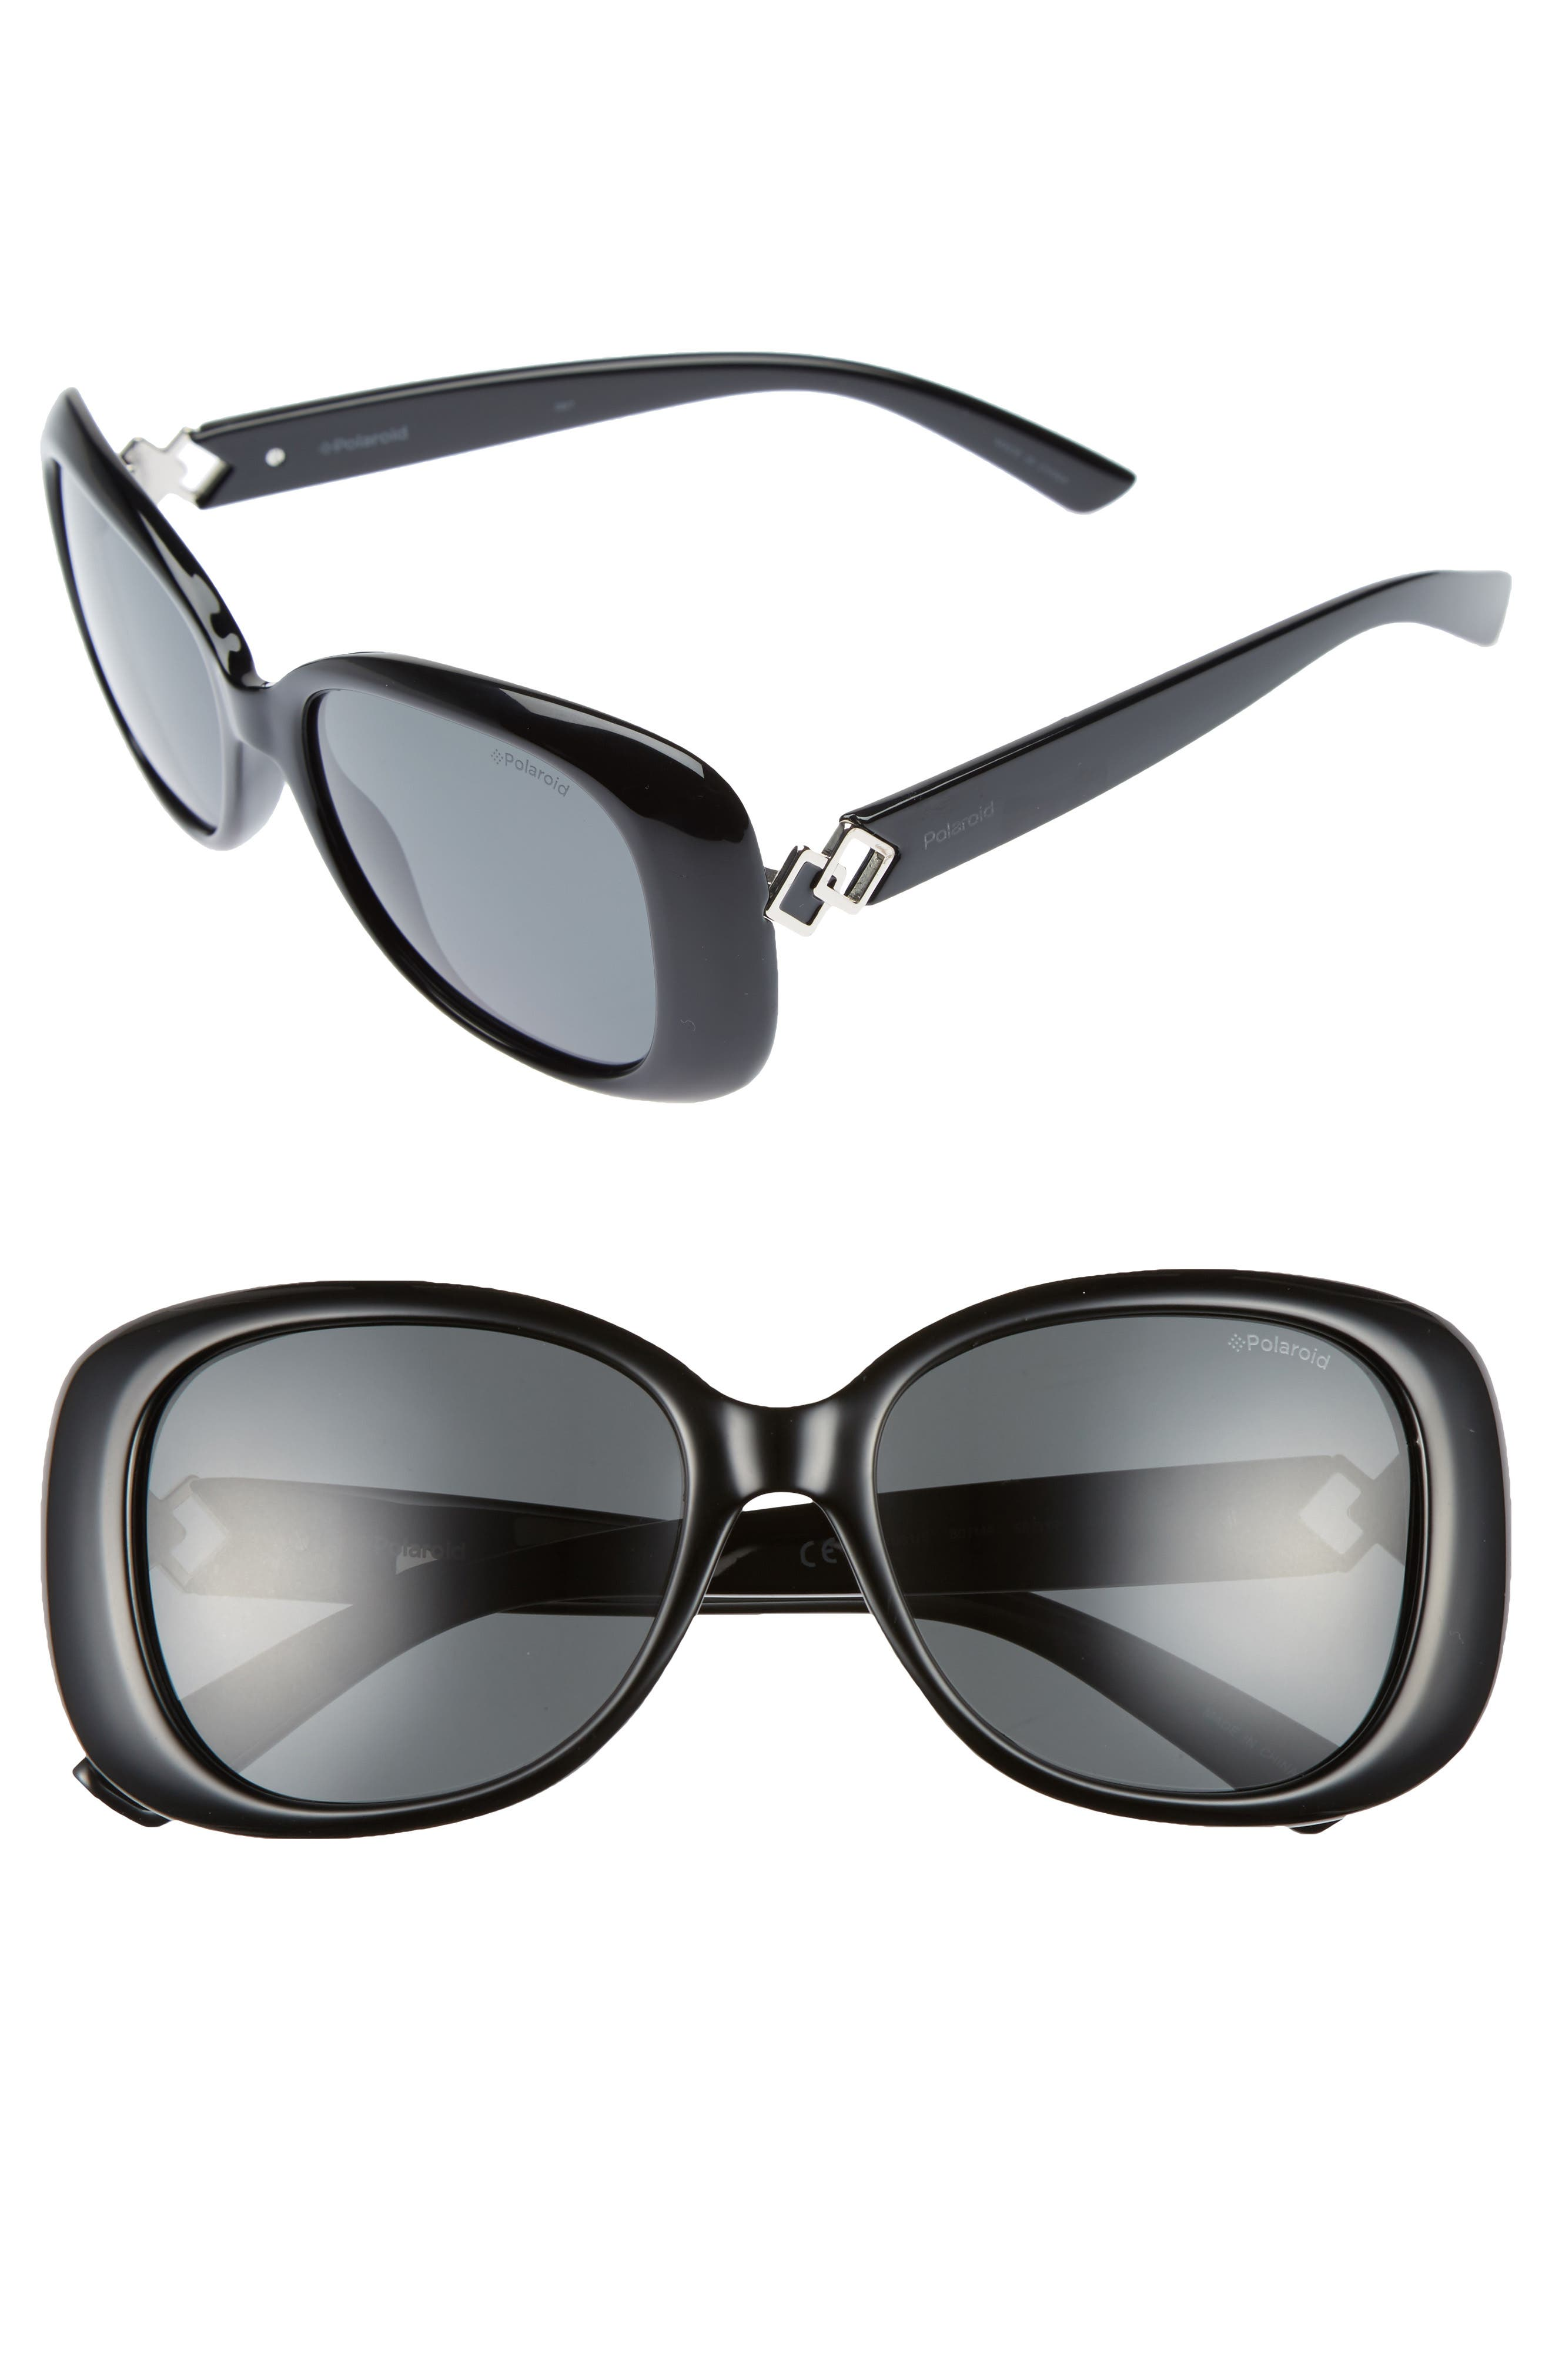 55mm Polarized Butterfly Sunglasses,                         Main,                         color, Black